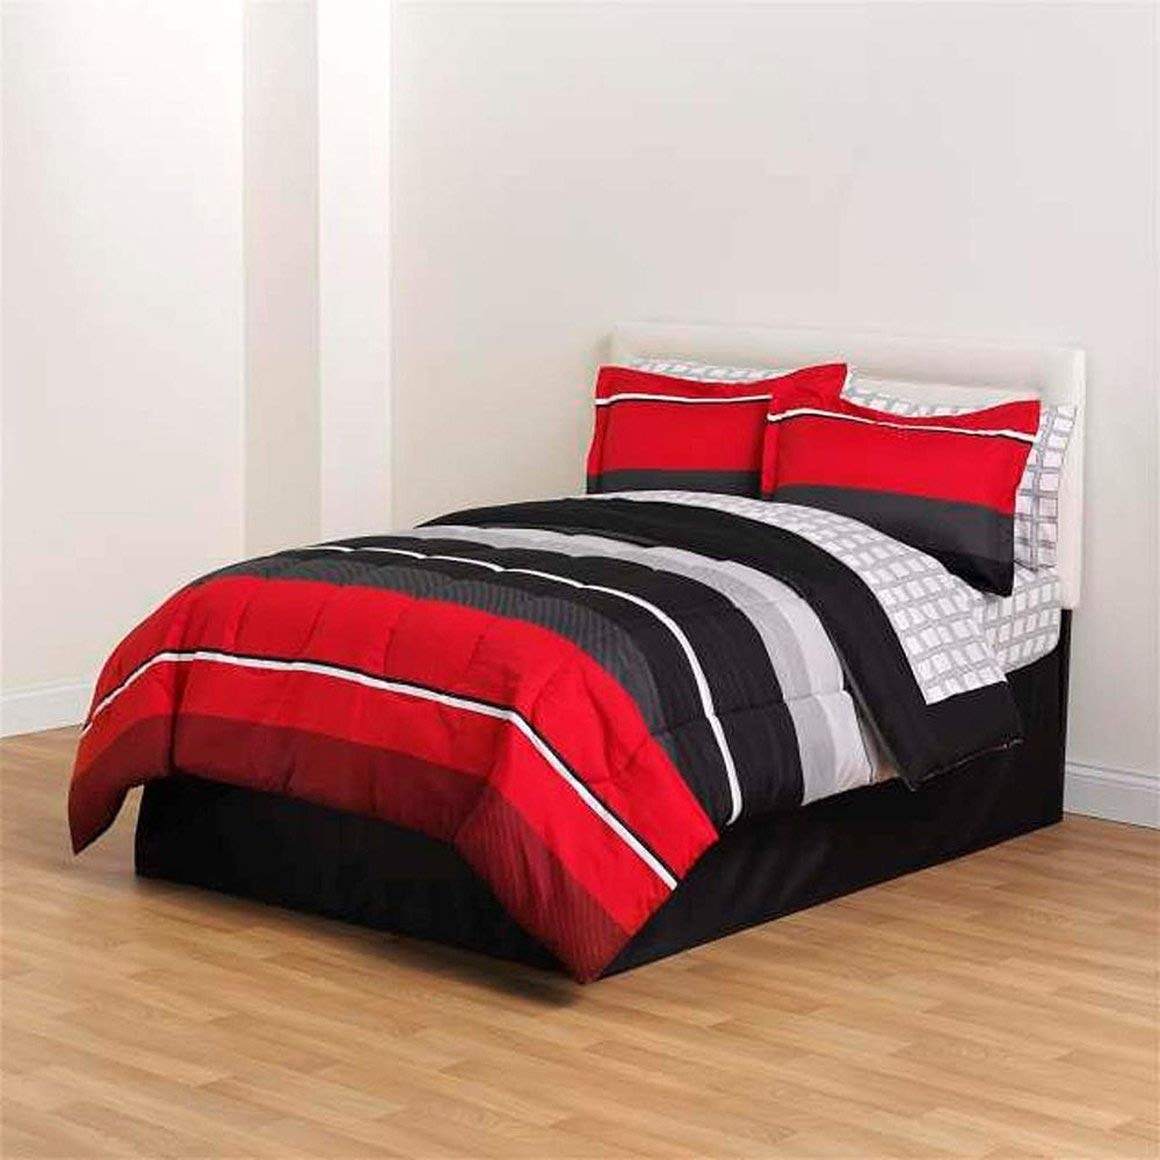 Amazon com 8 piece red black comforter sheet pillow soft full size bedding woven bed set home kitchen